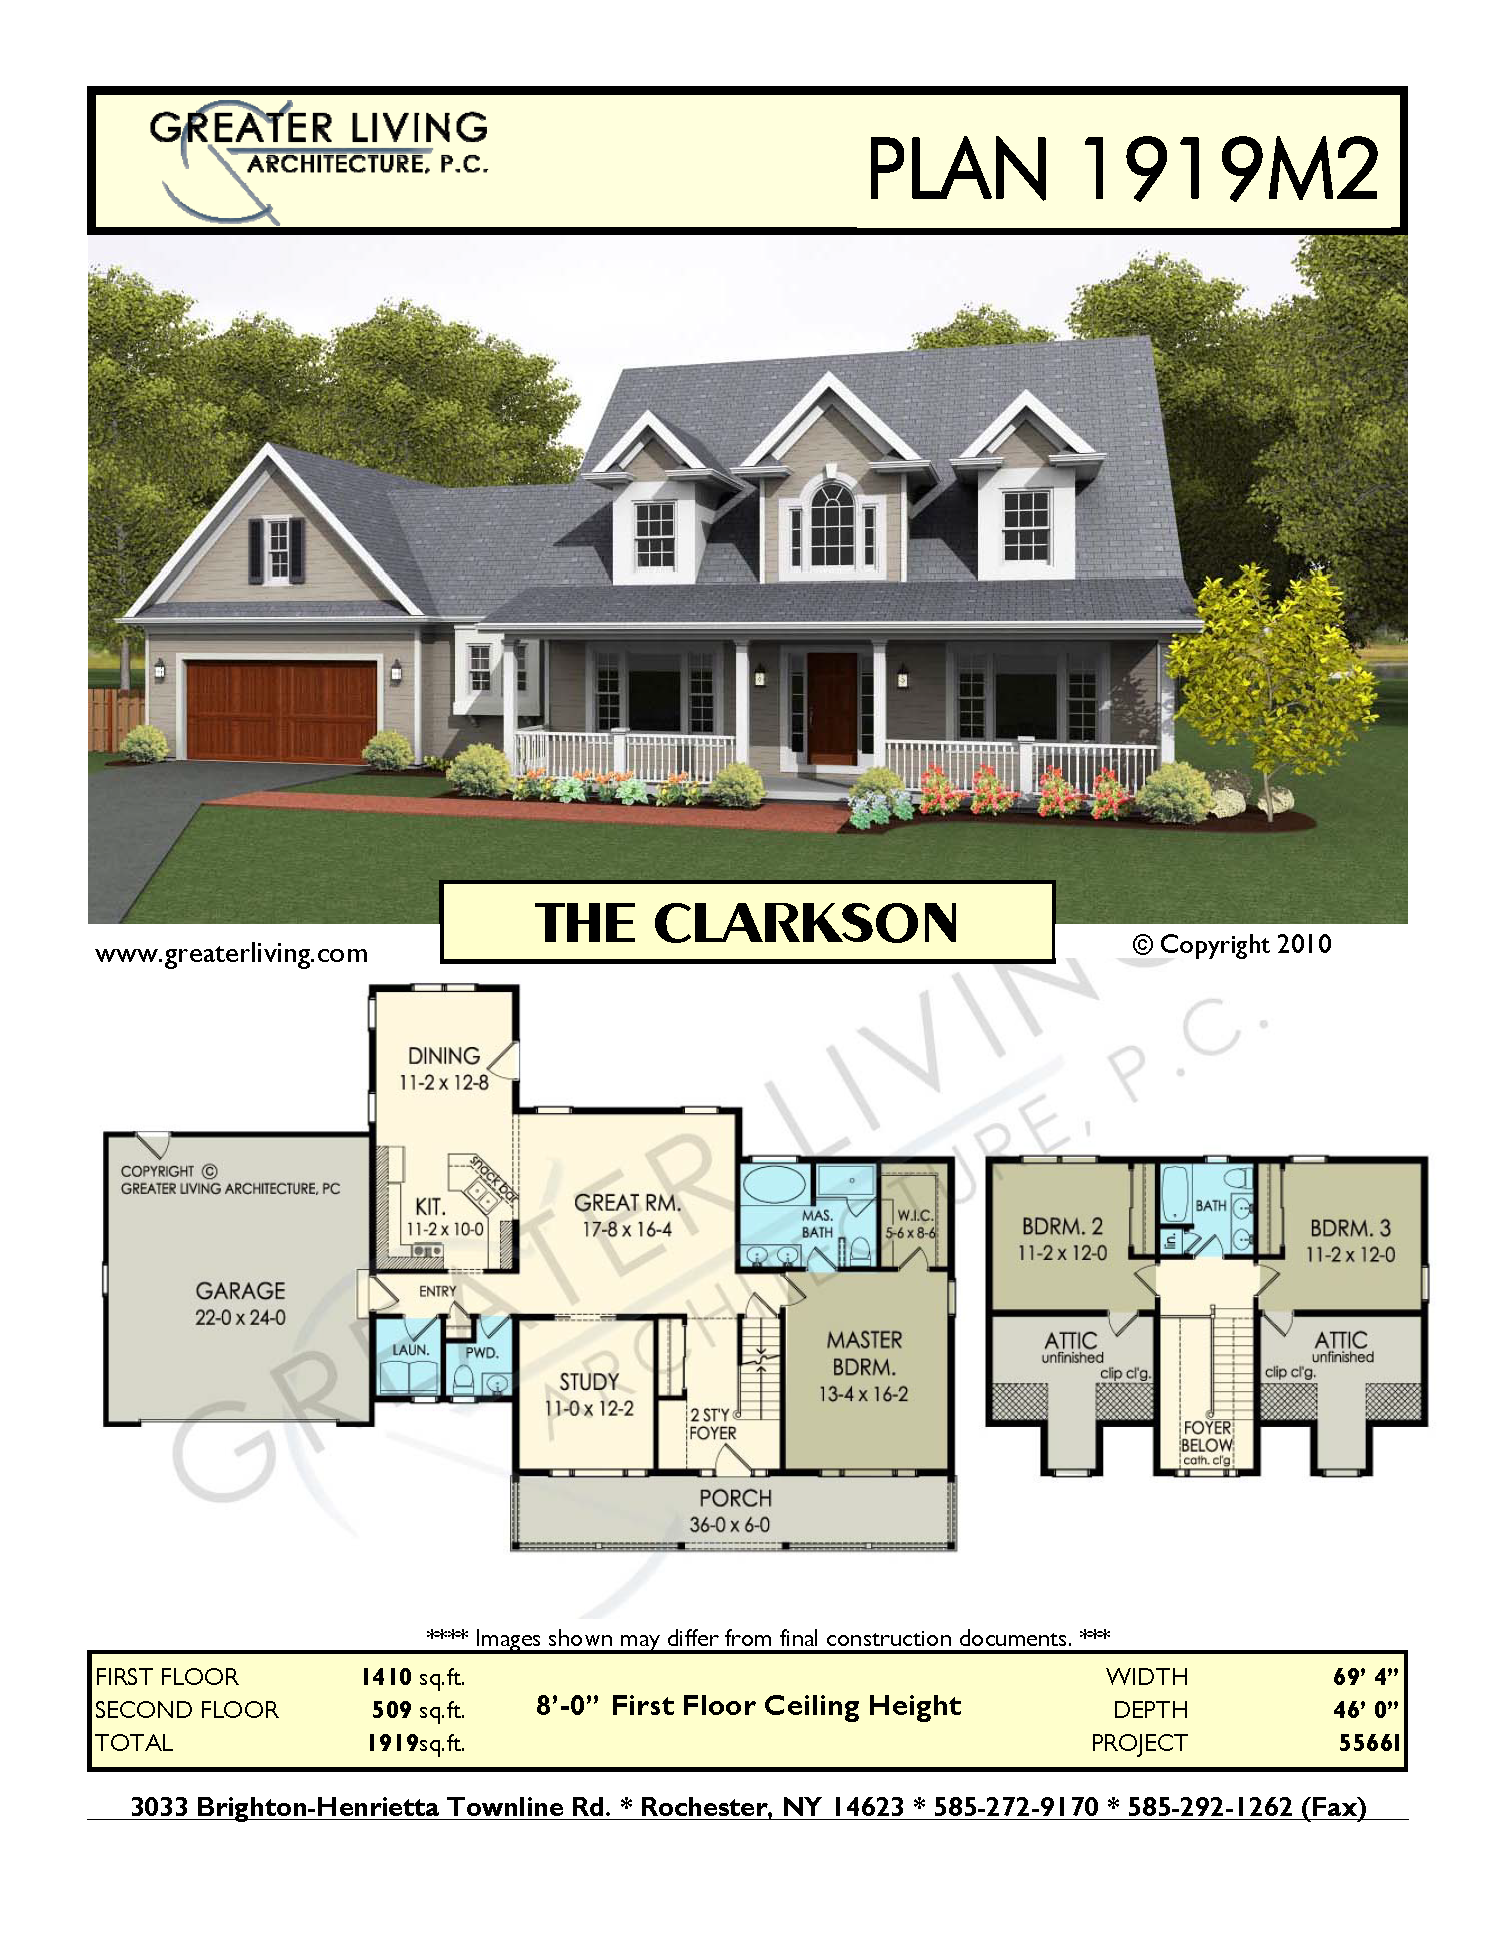 Plan 1919M2: THE CLARKSON | House plans, Sims 4 house plans